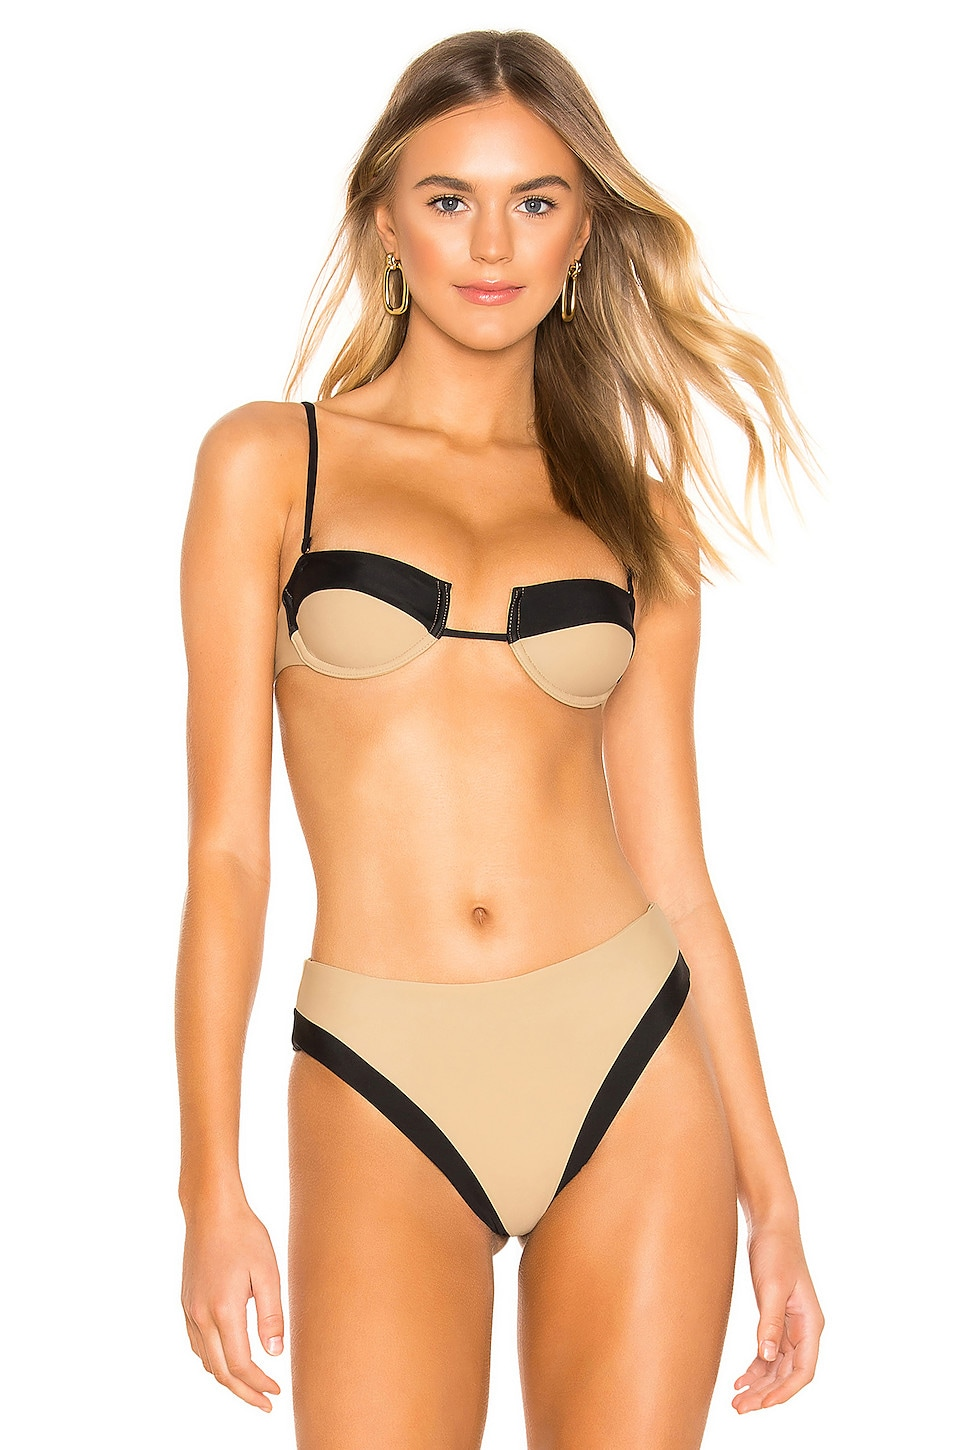 Tularosa Madona Top in Nude & Black